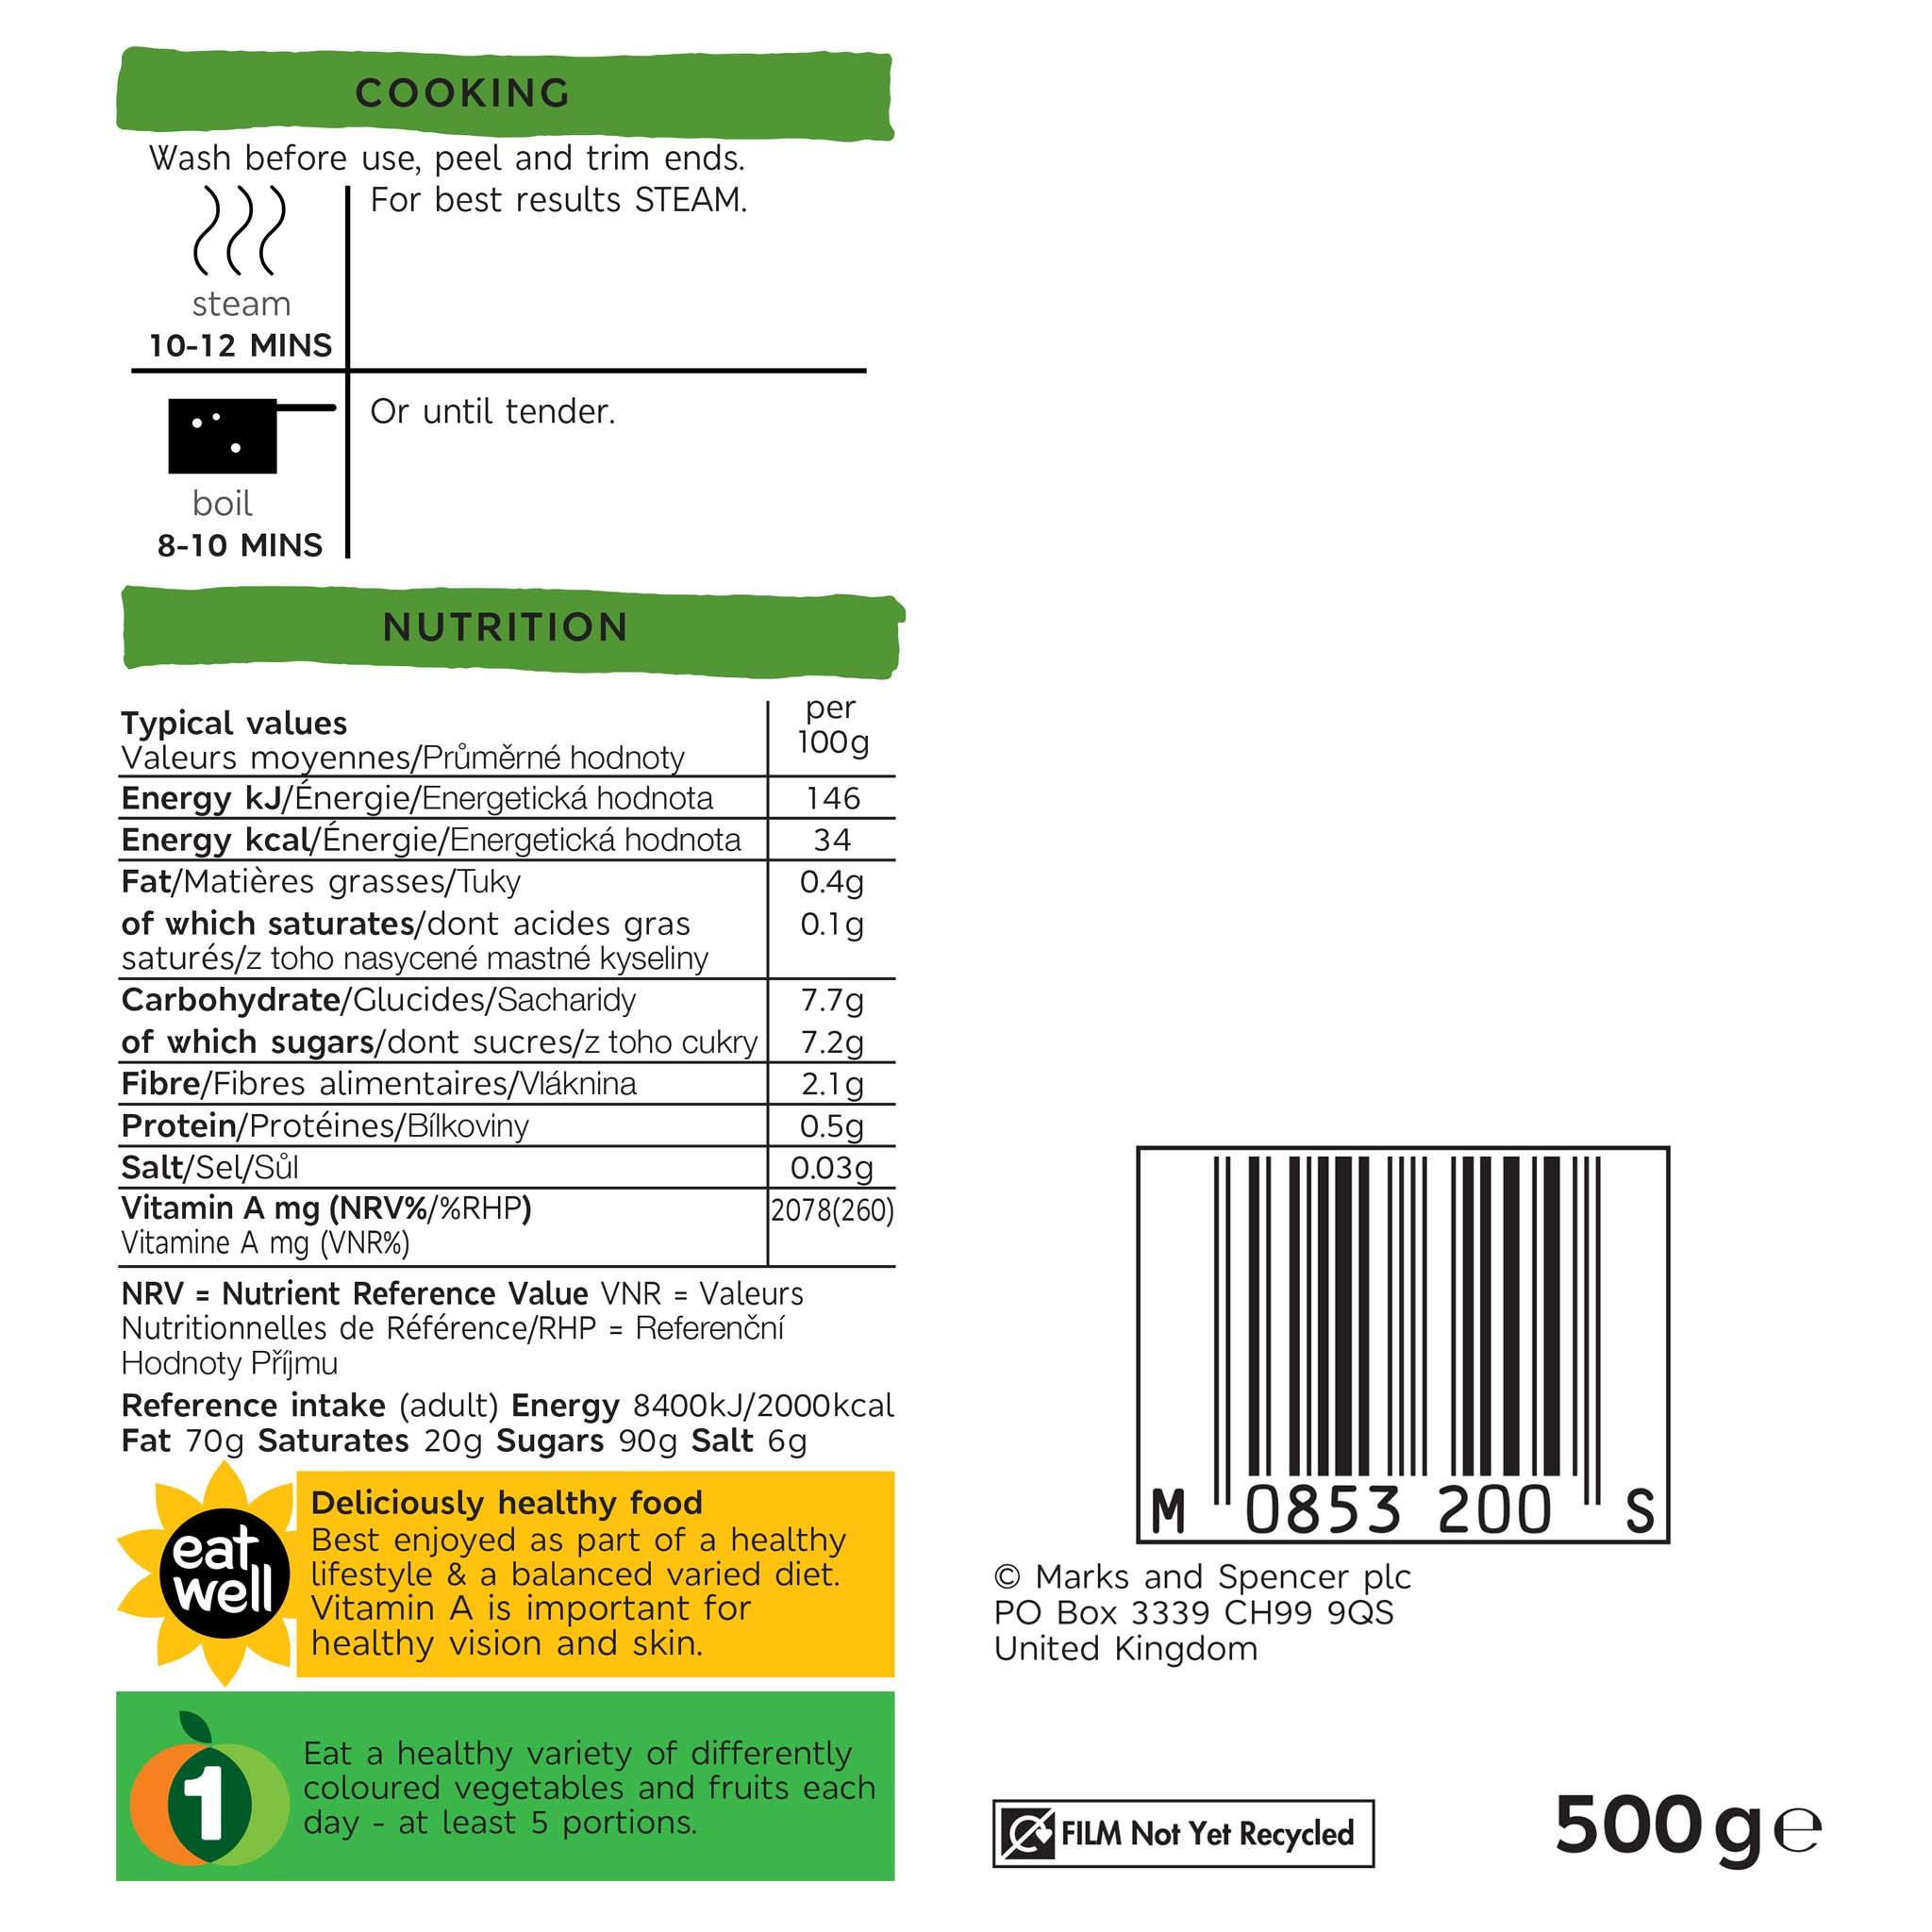 Small Carrot Bag 500g Label